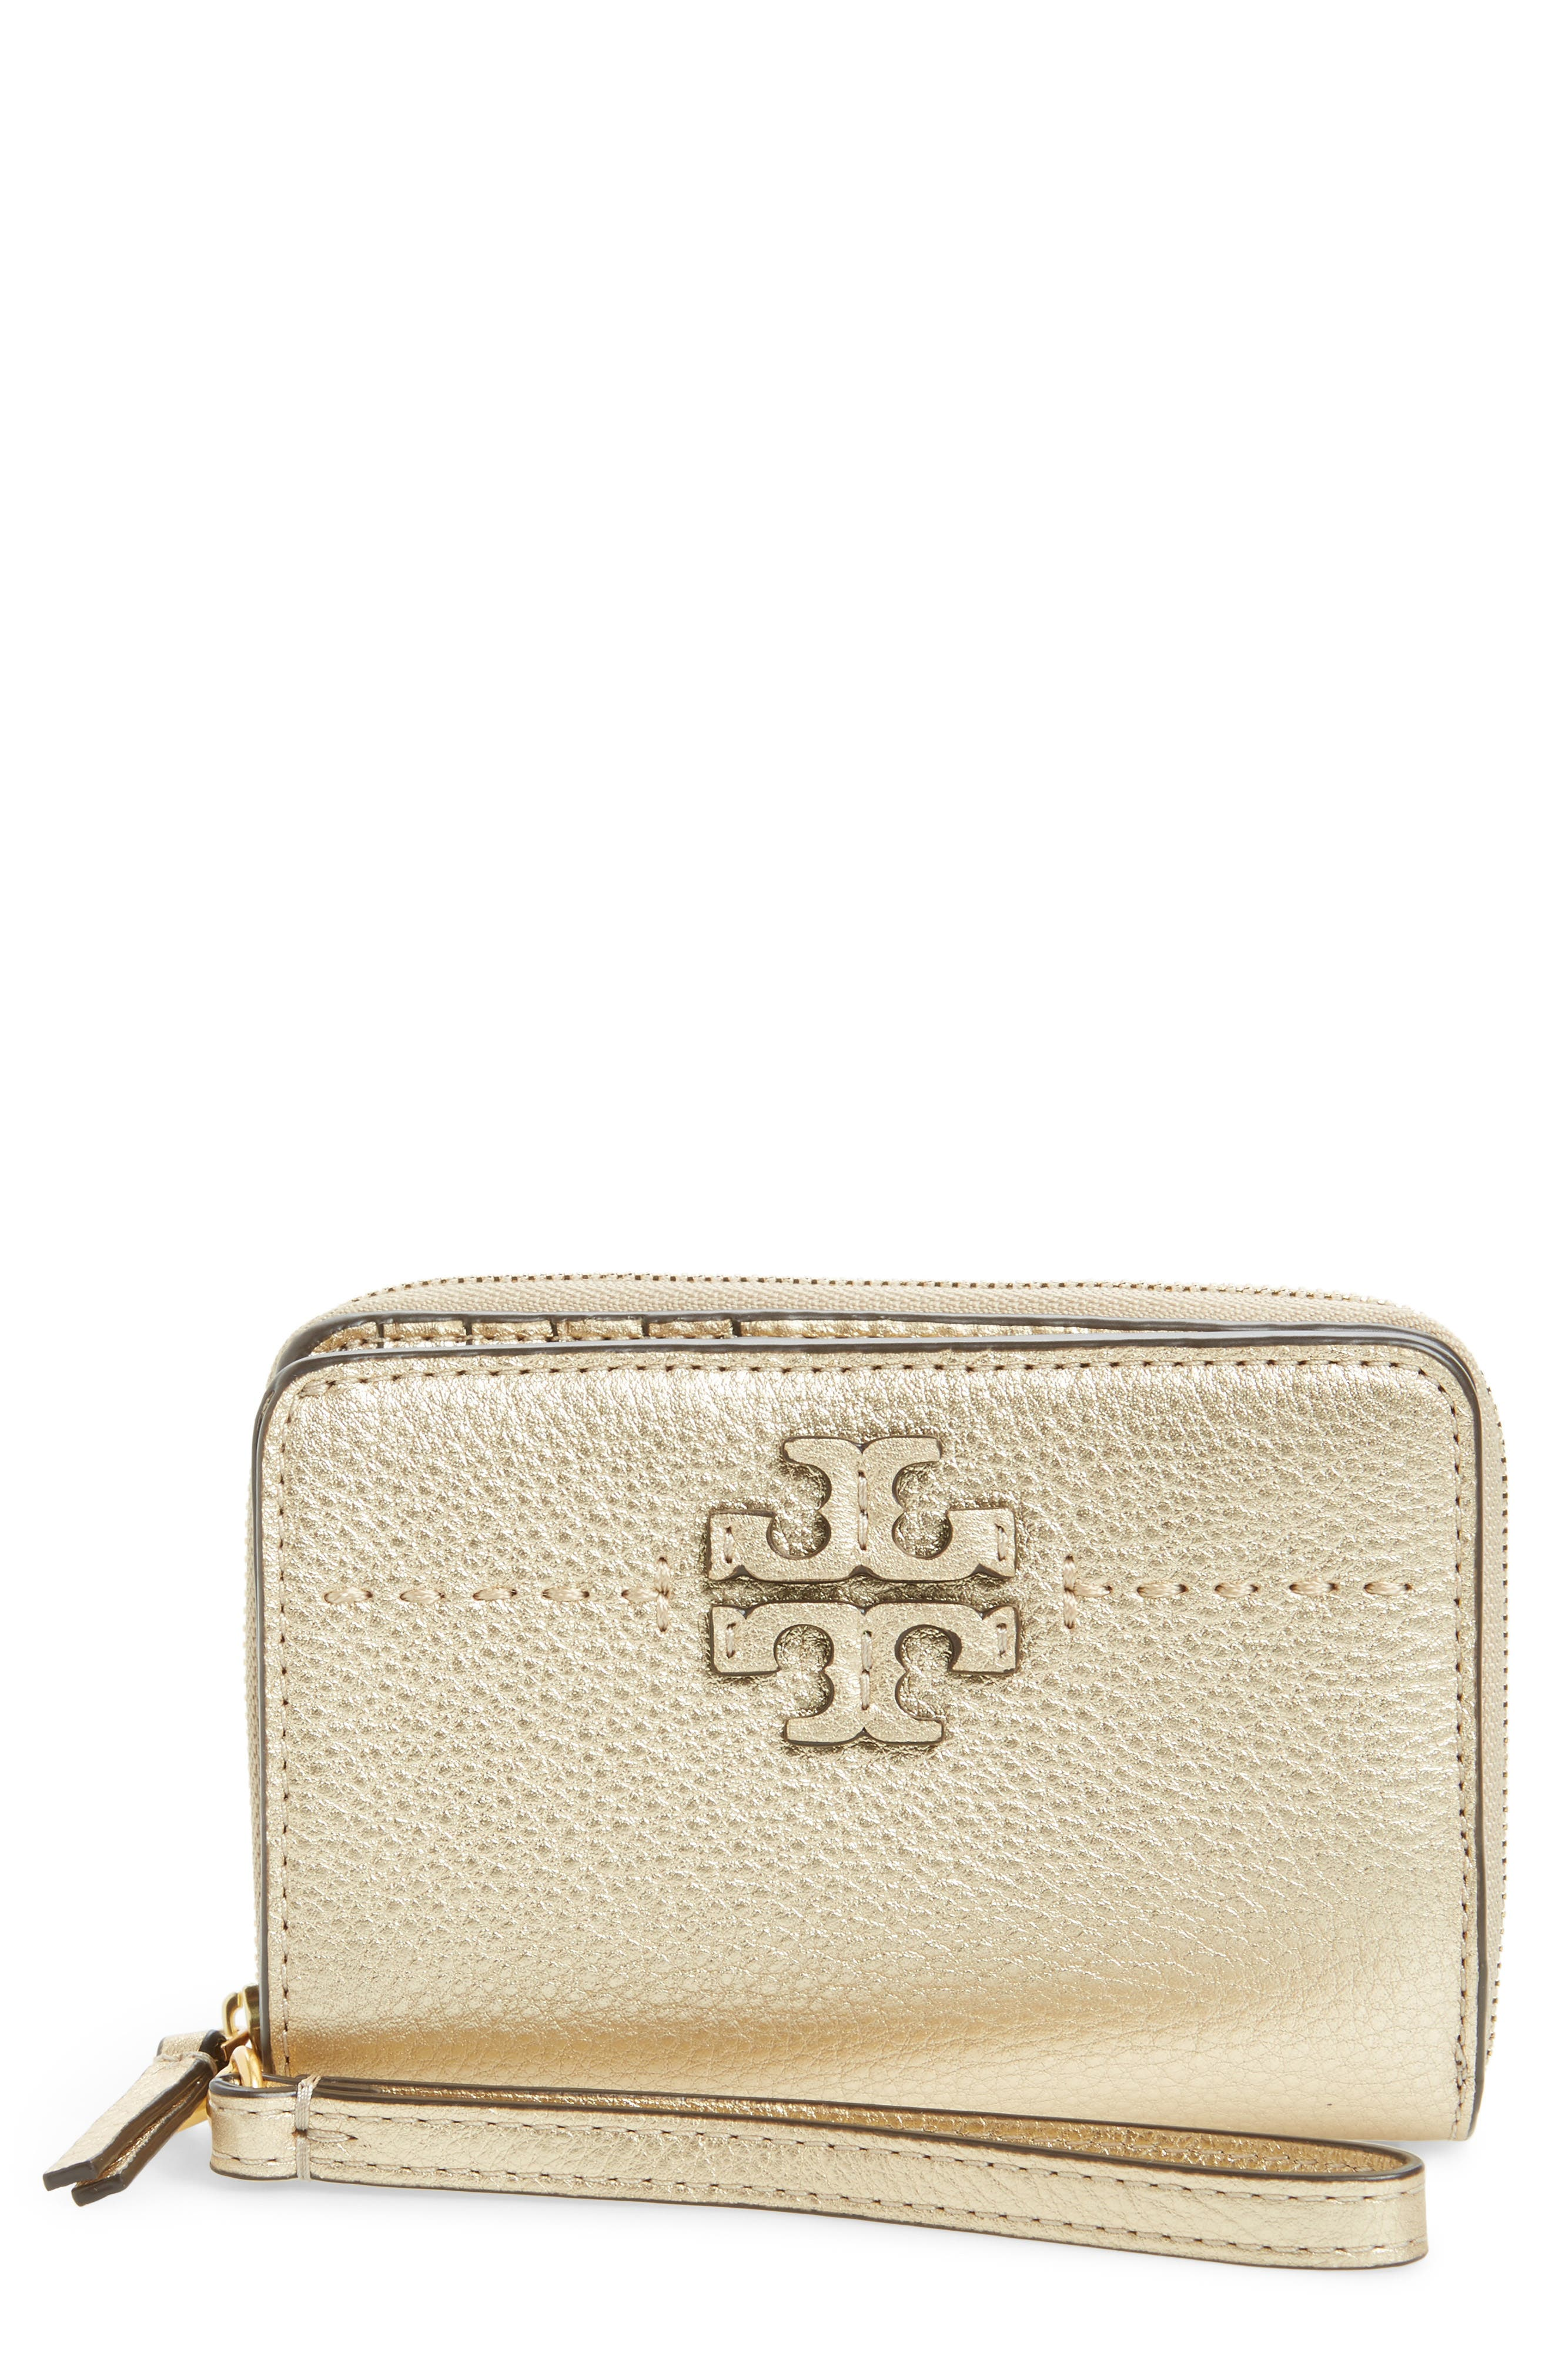 McGraw Leather Bifold Wallet,                         Main,                         color, Gold